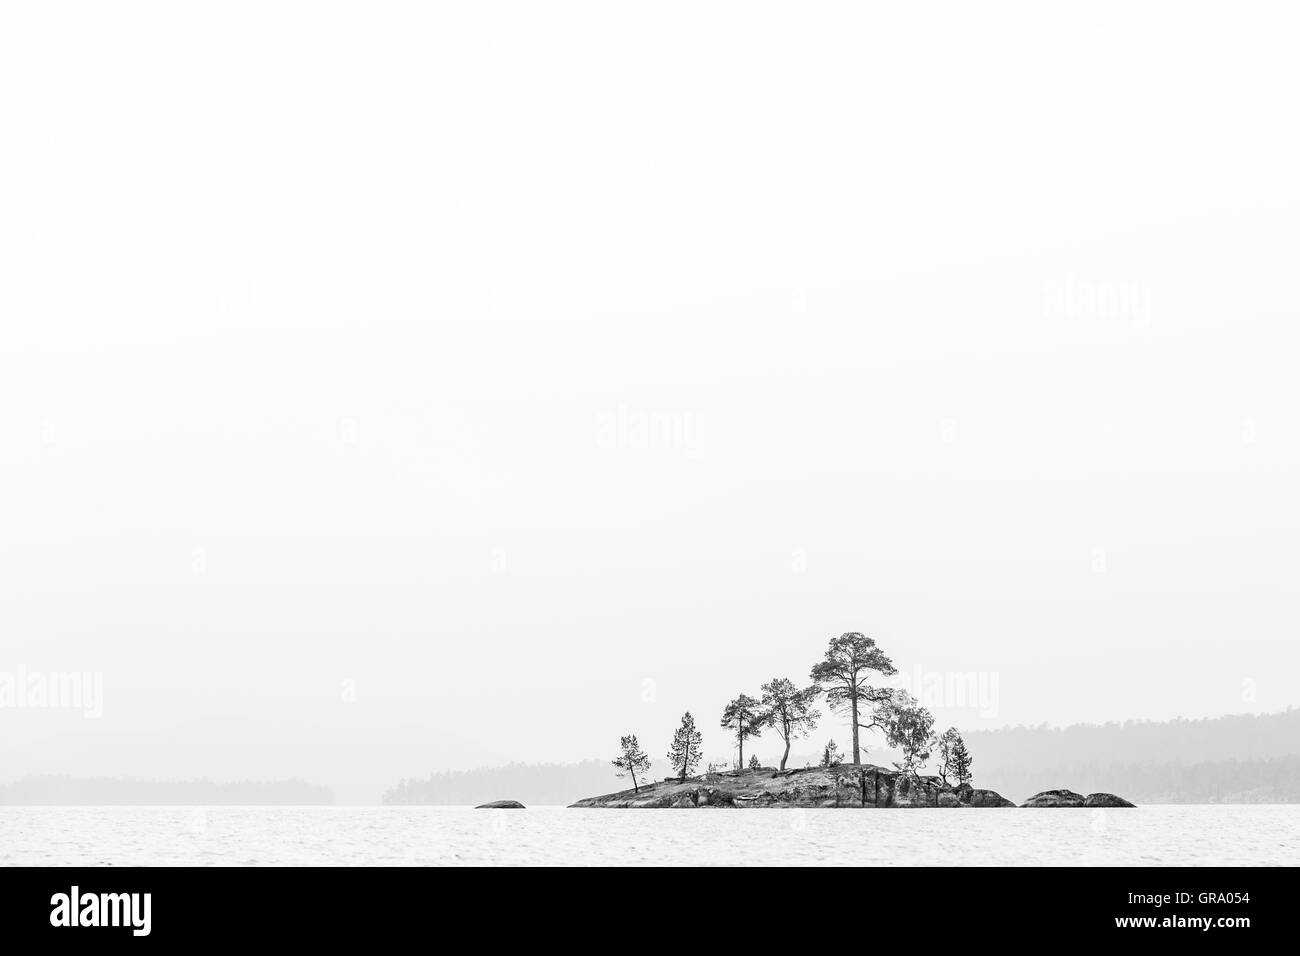 Black And White Photo Of A Remote Island In Lake Inari In Northern Finland With Lots Of Copy Space - Stock Image